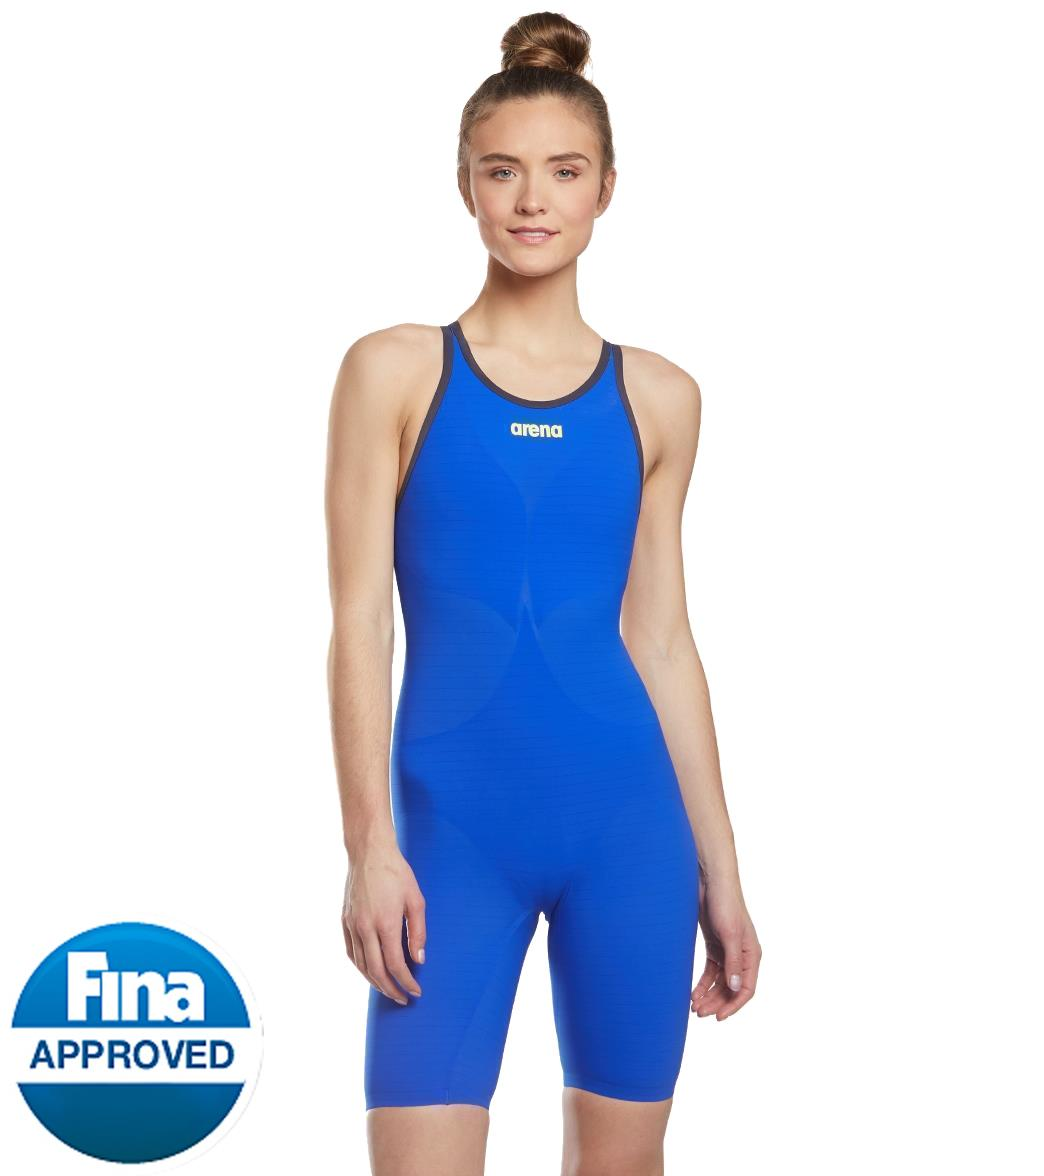 Arena Women's Powerskin Carbon Air2 Backstroke Tech Suit Swimsuit